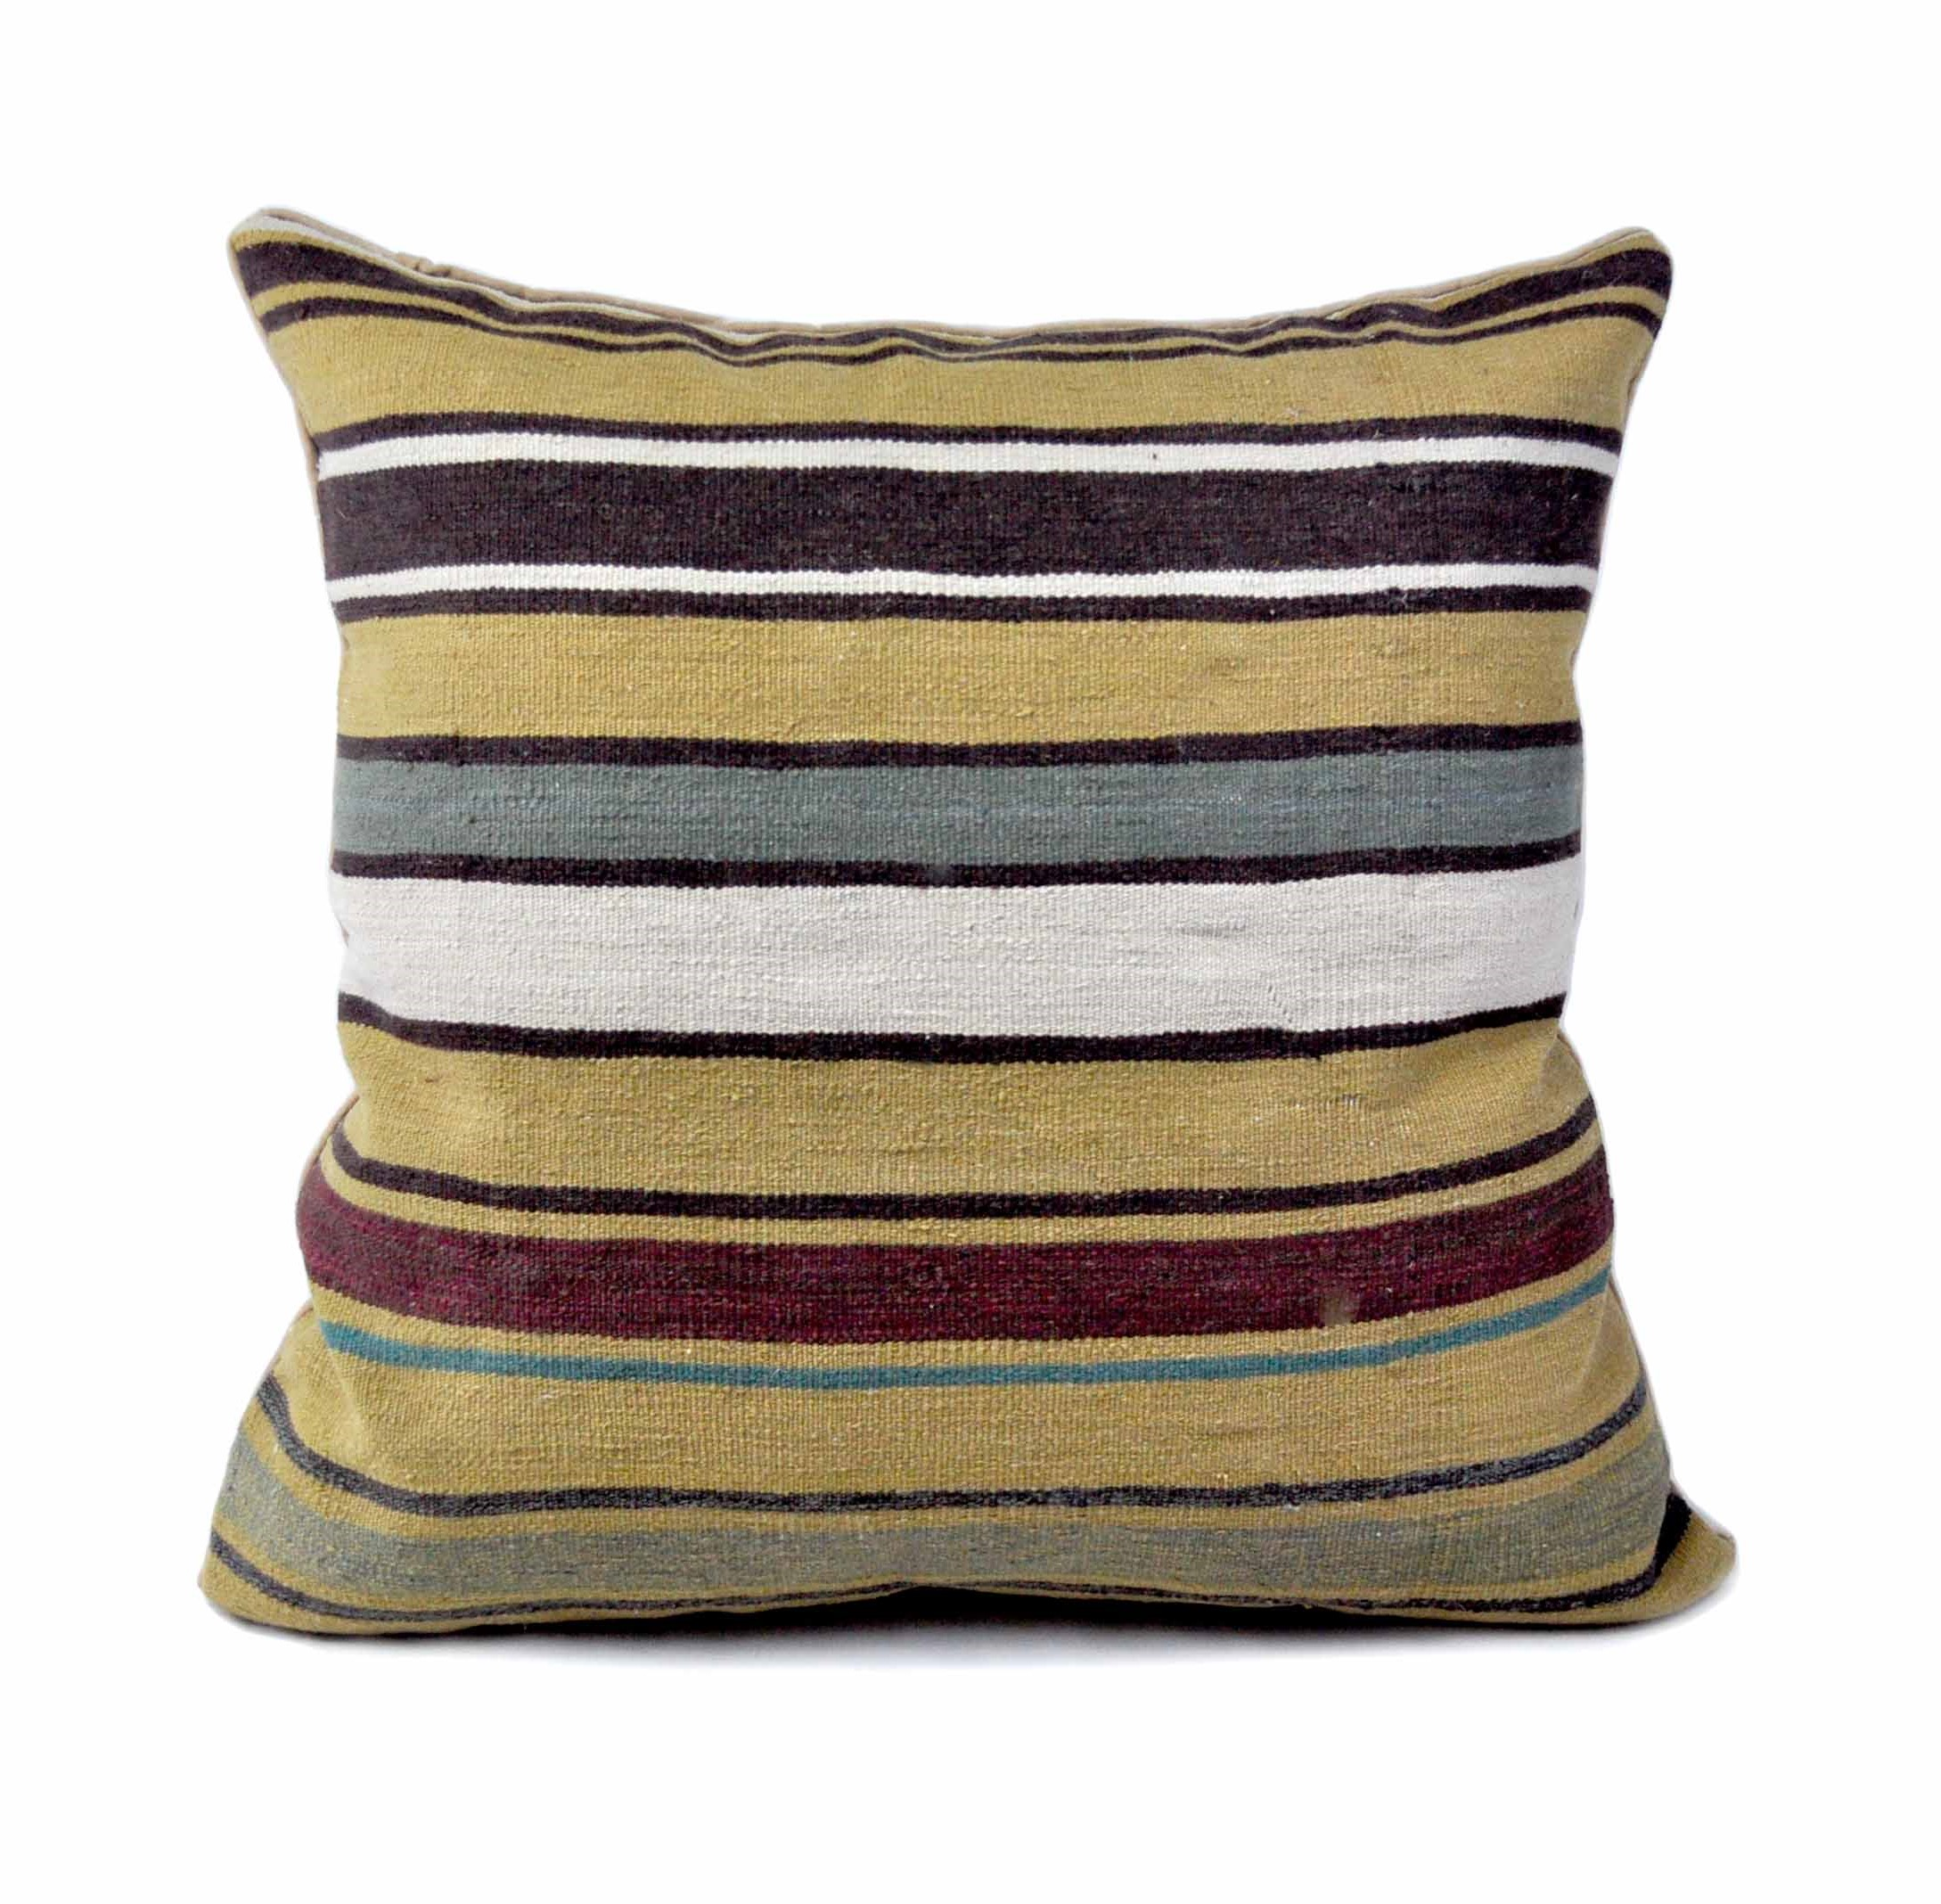 24″x24″ Hand-woven Wool Kilim Pillow Cover 12981035